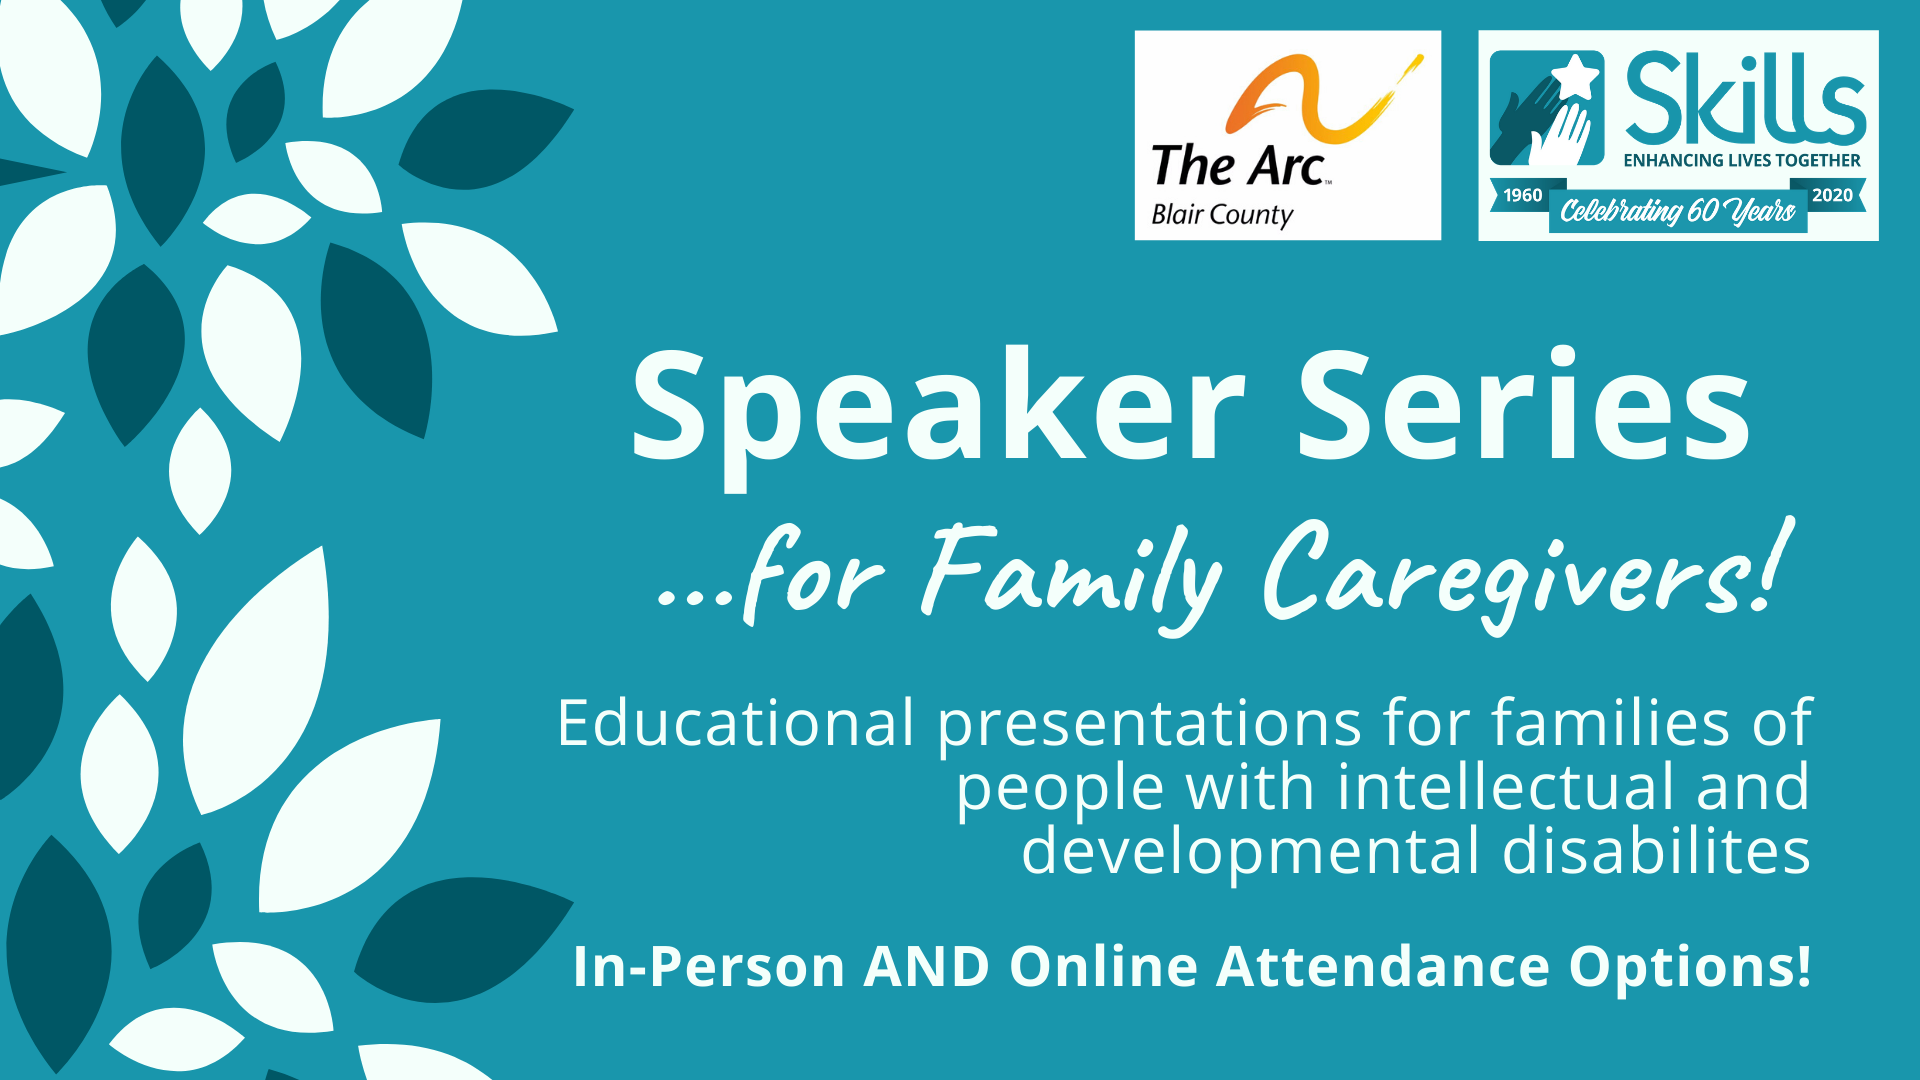 Display image announcing an upcoming speaker series for Family Caregivers.